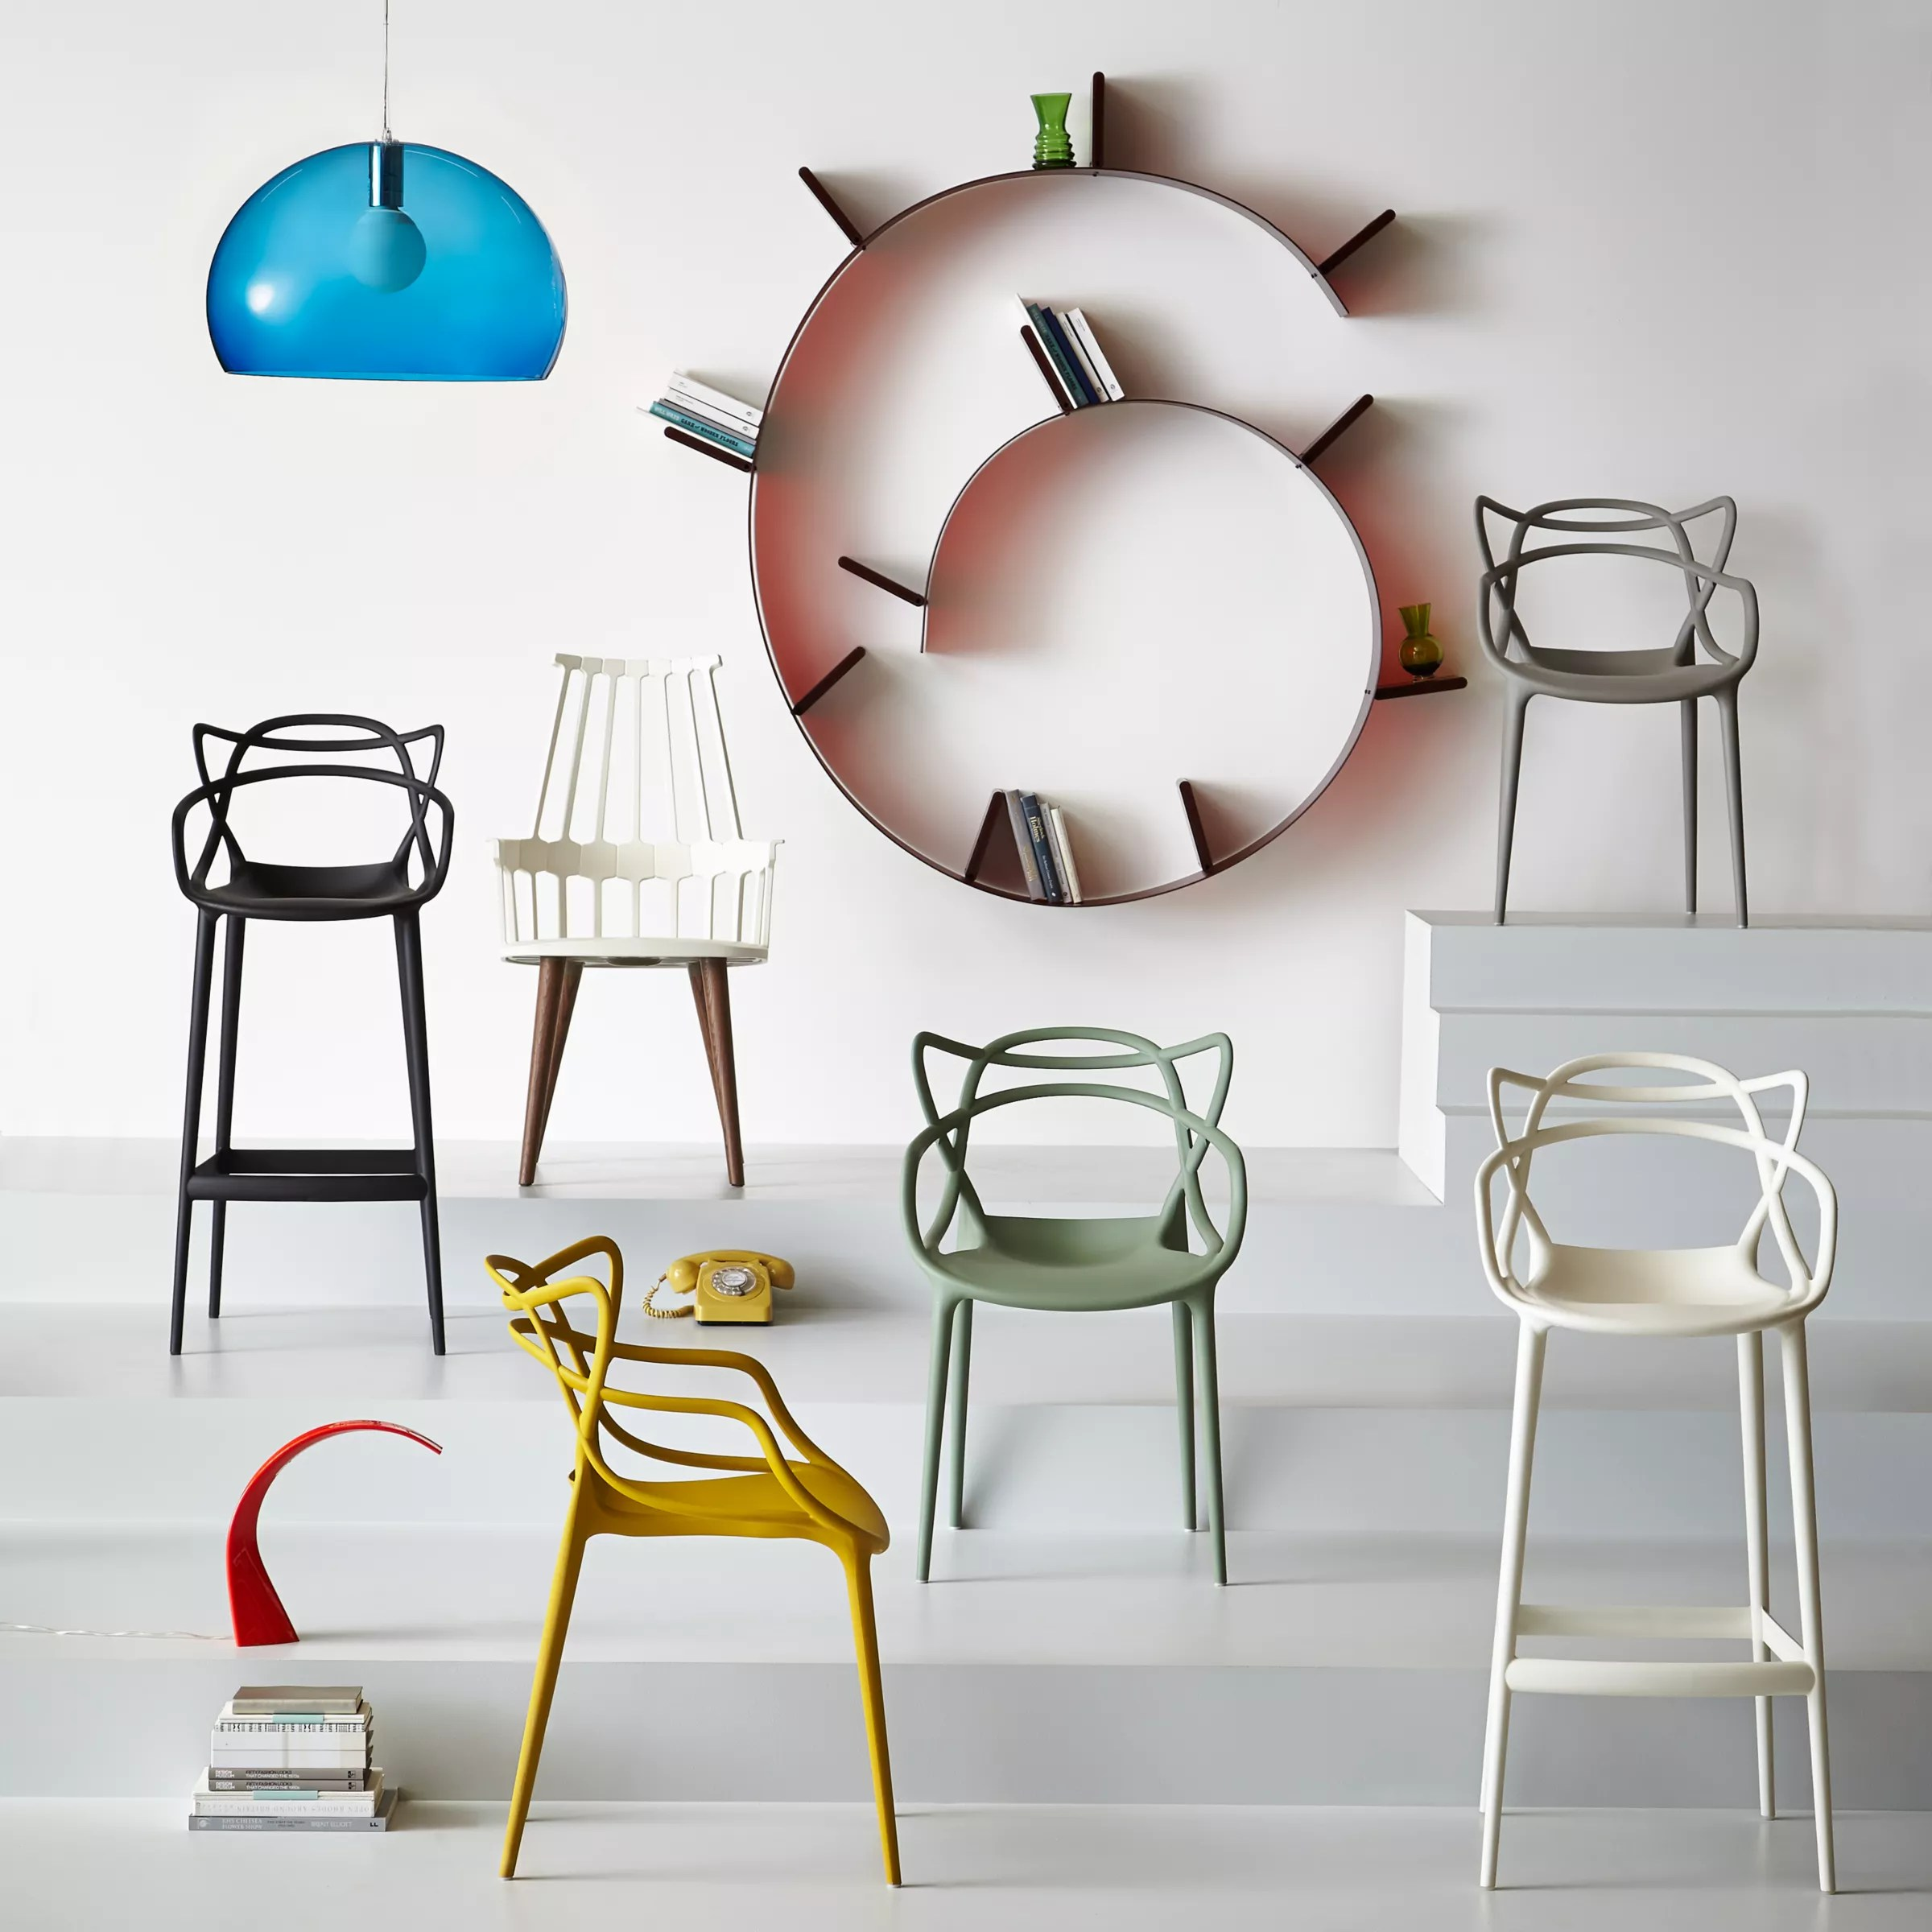 design chair kartell chairs for cheap philippe starck masters bar at john lewis